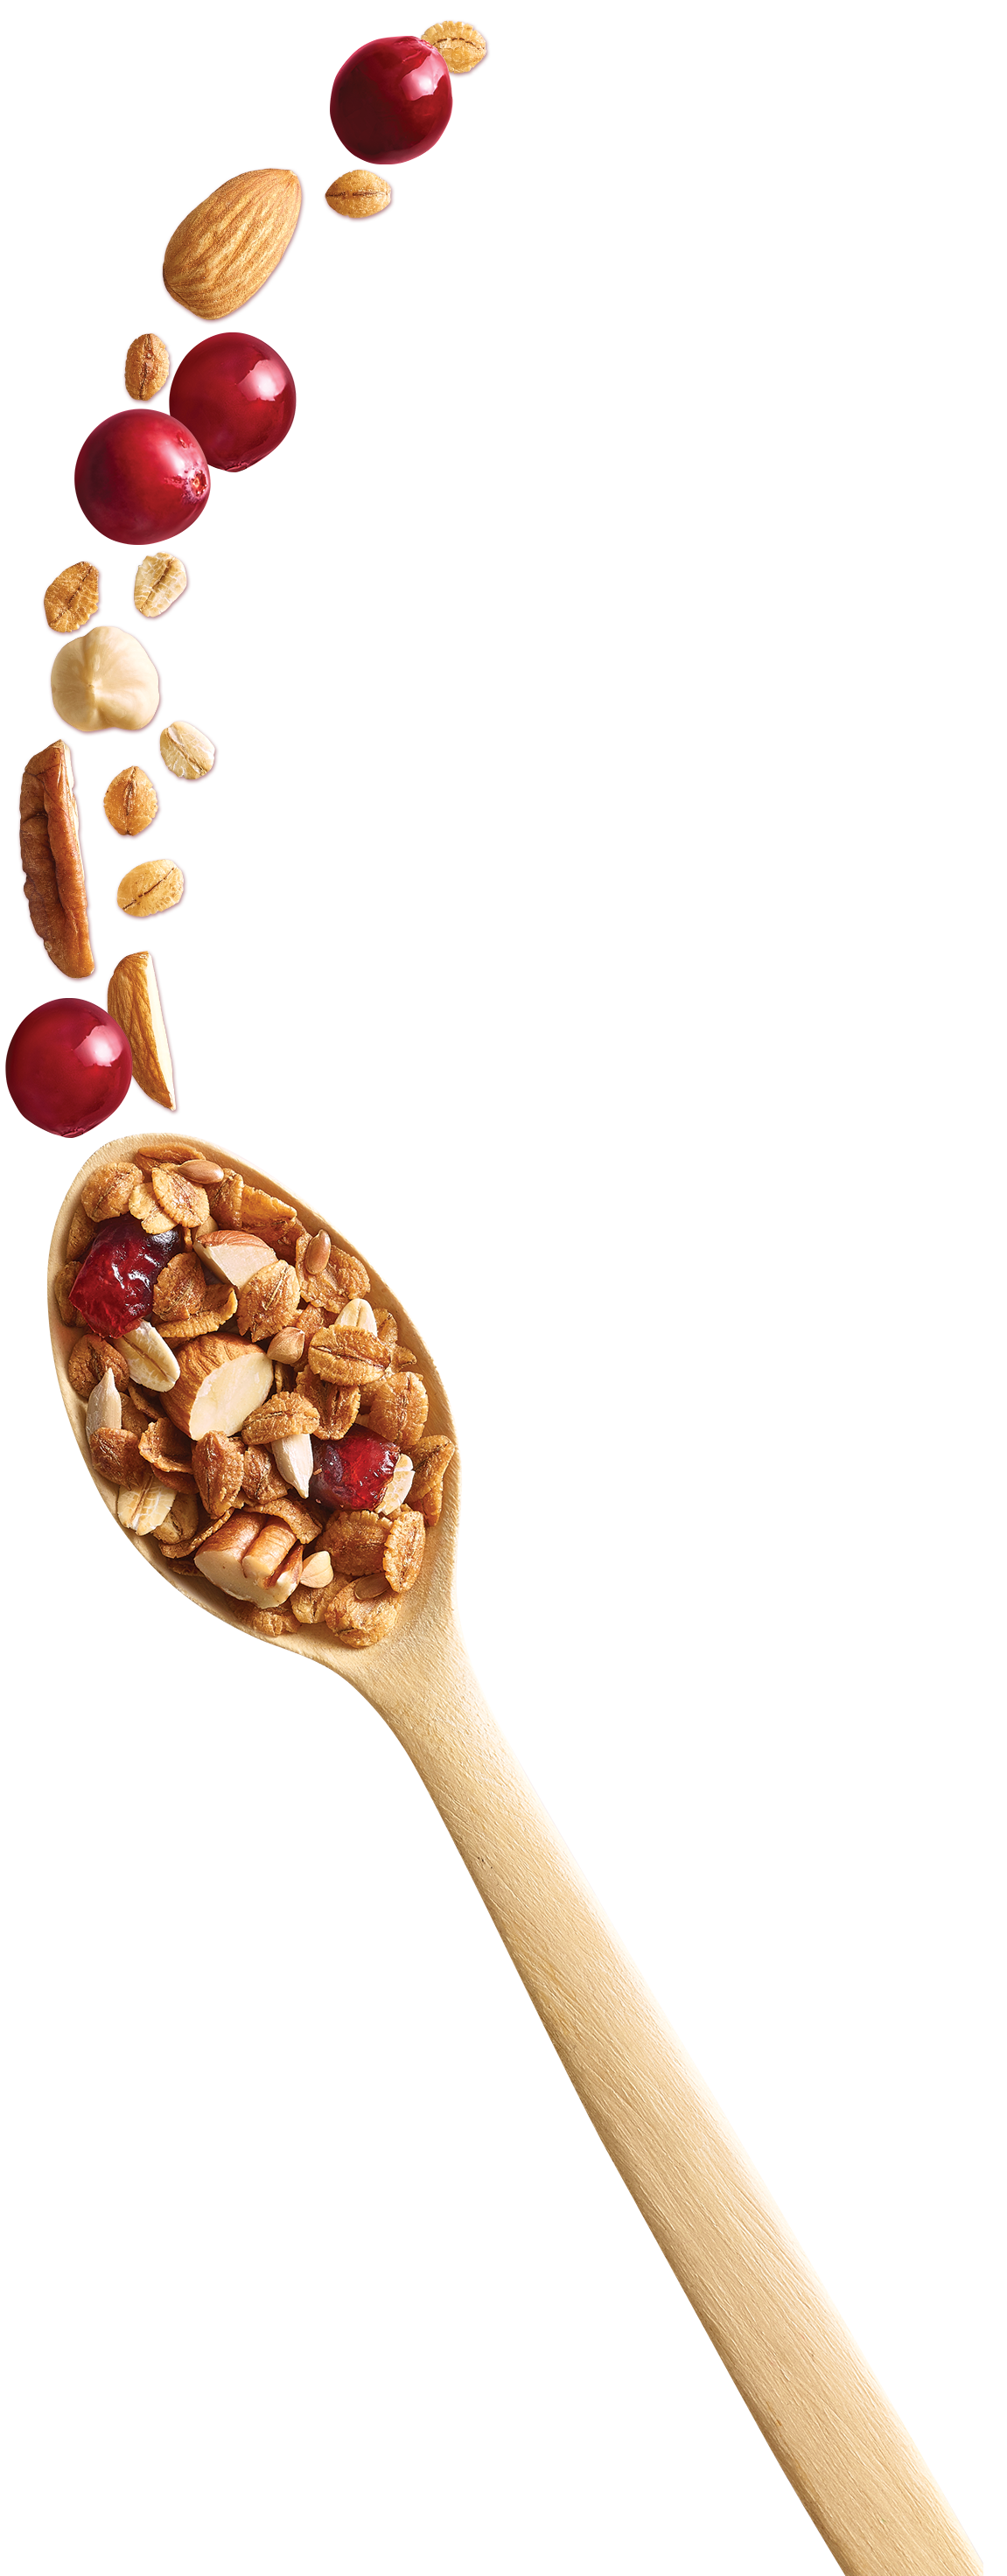 Cereal spoon png. Day reboot join